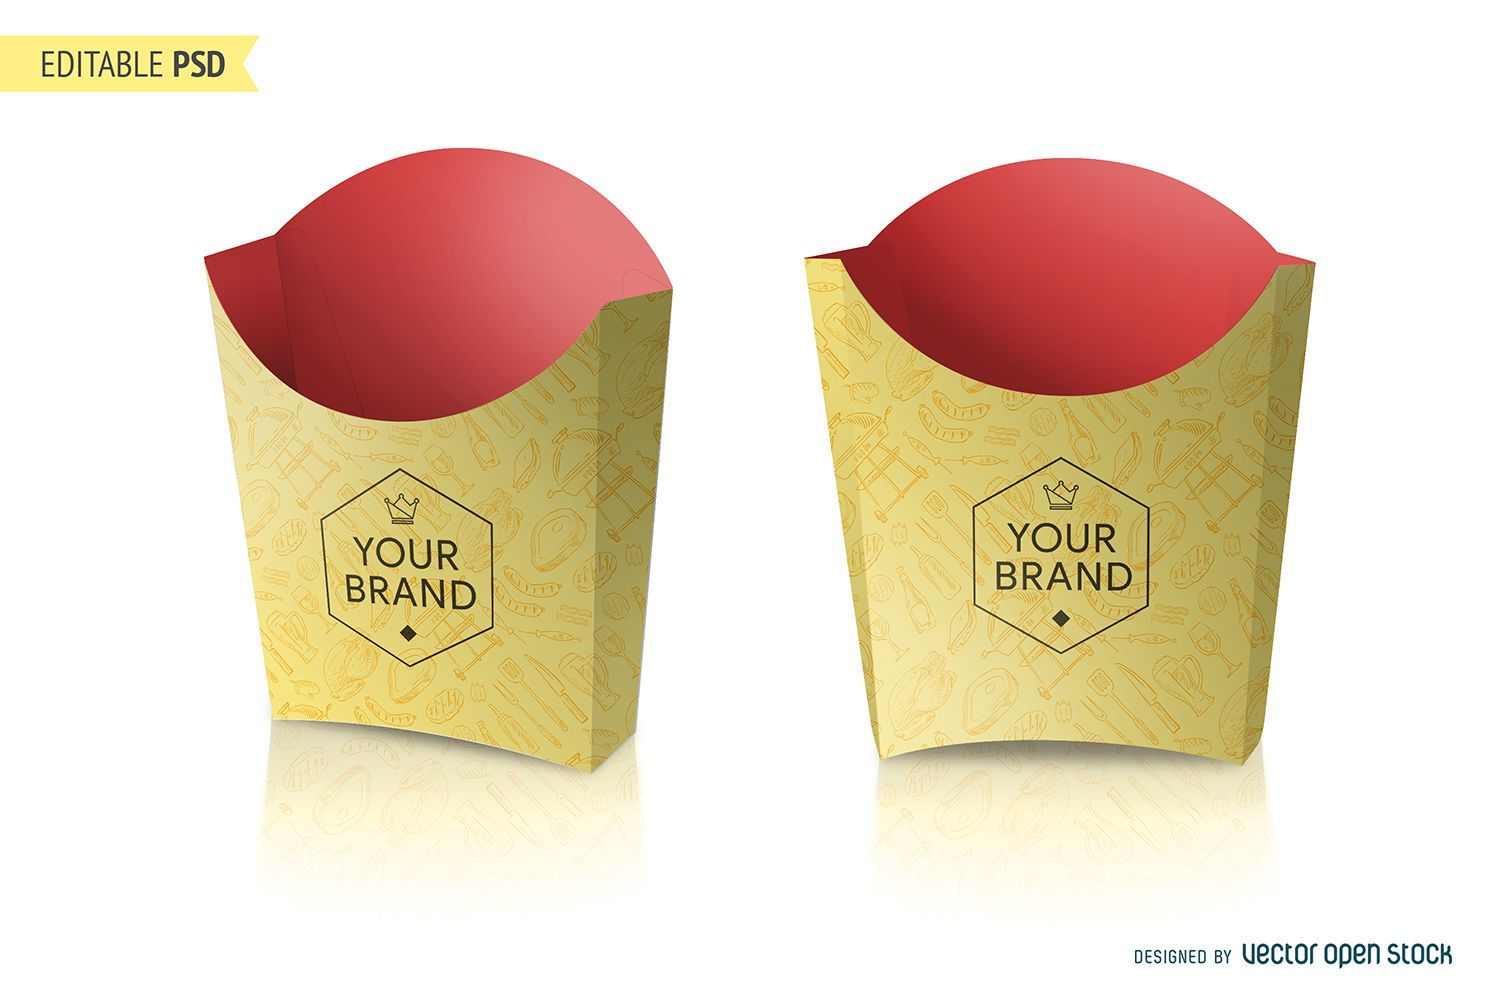 French Fries Packaging Mockup PSD Download Large Image 1500x1000px License User